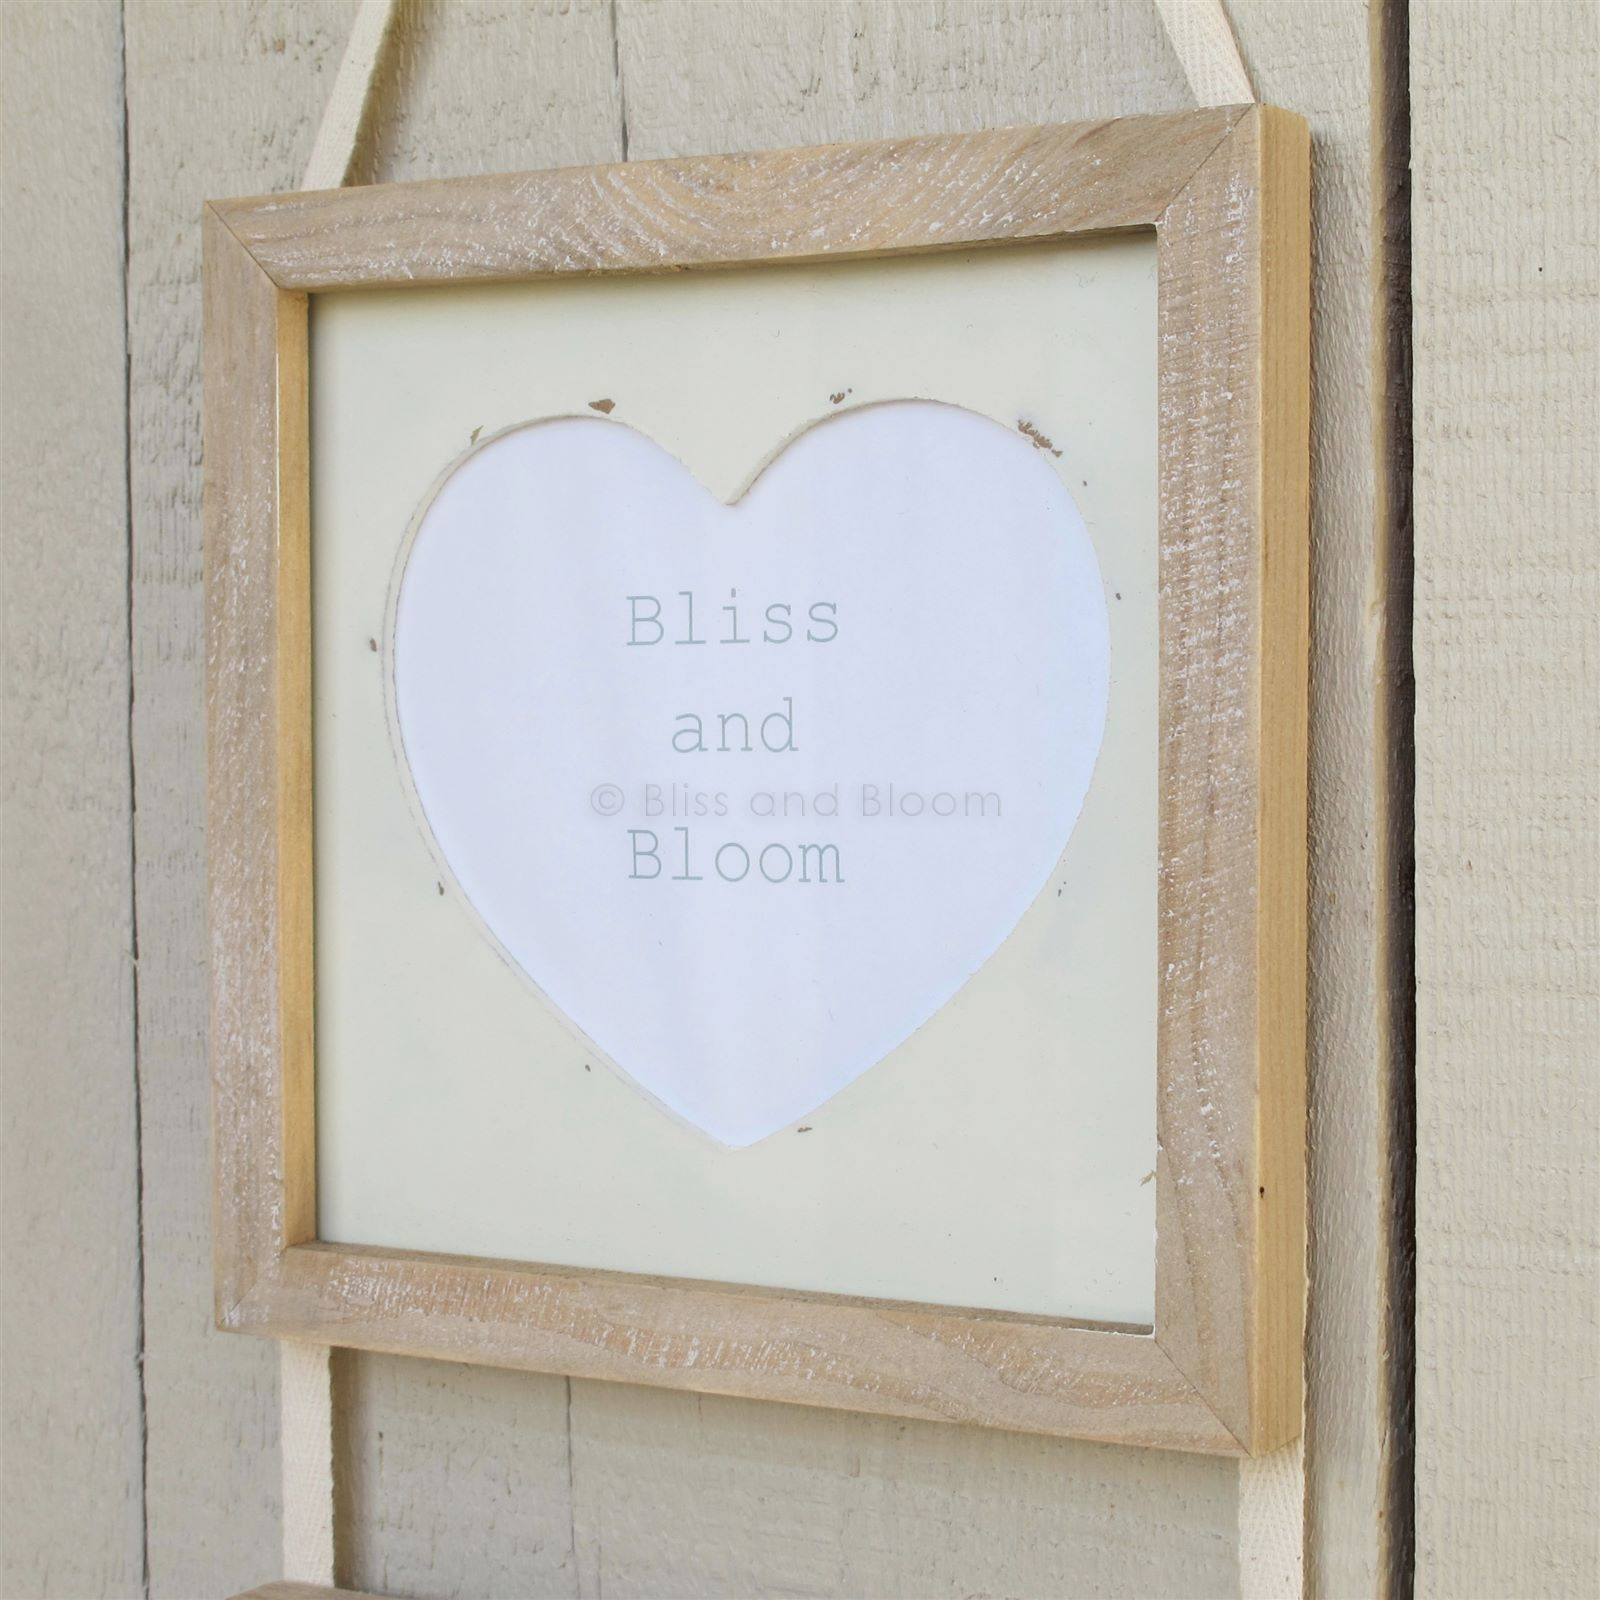 Triple Wooden Picture Frames Bliss and Bloom Ltd